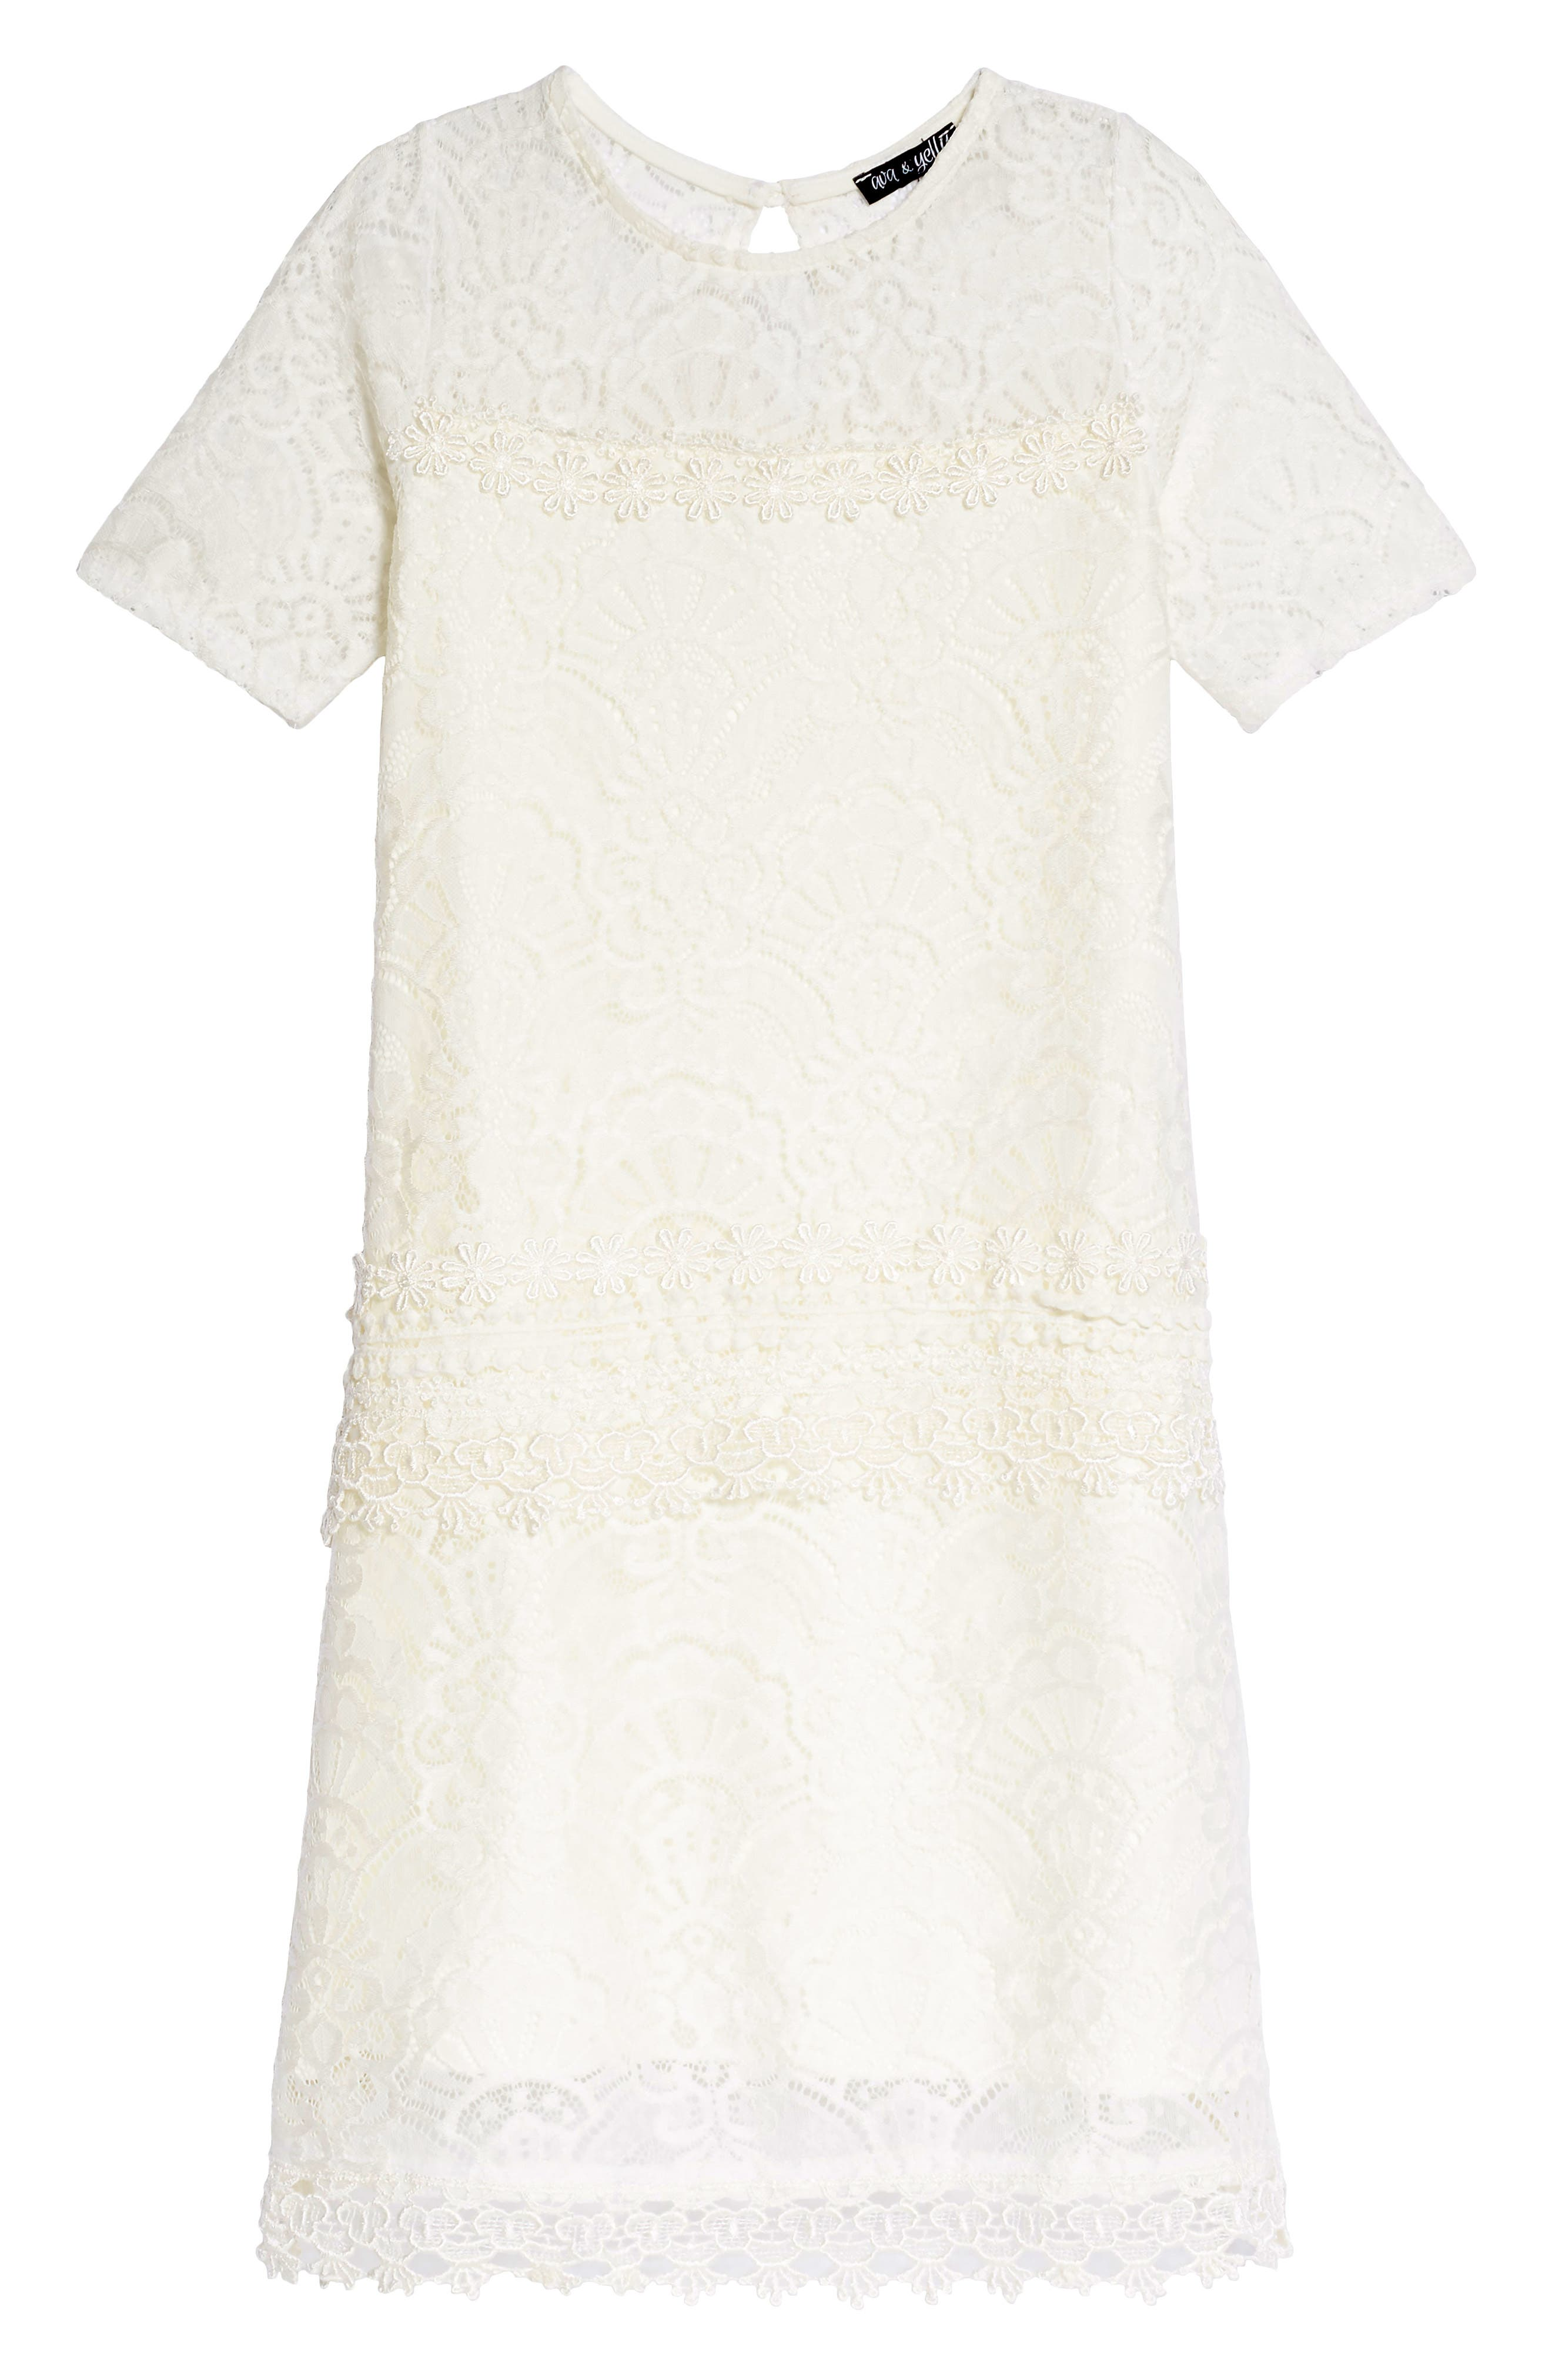 Ava & Yelly Lace Panel Shift Dress (Big Girls)